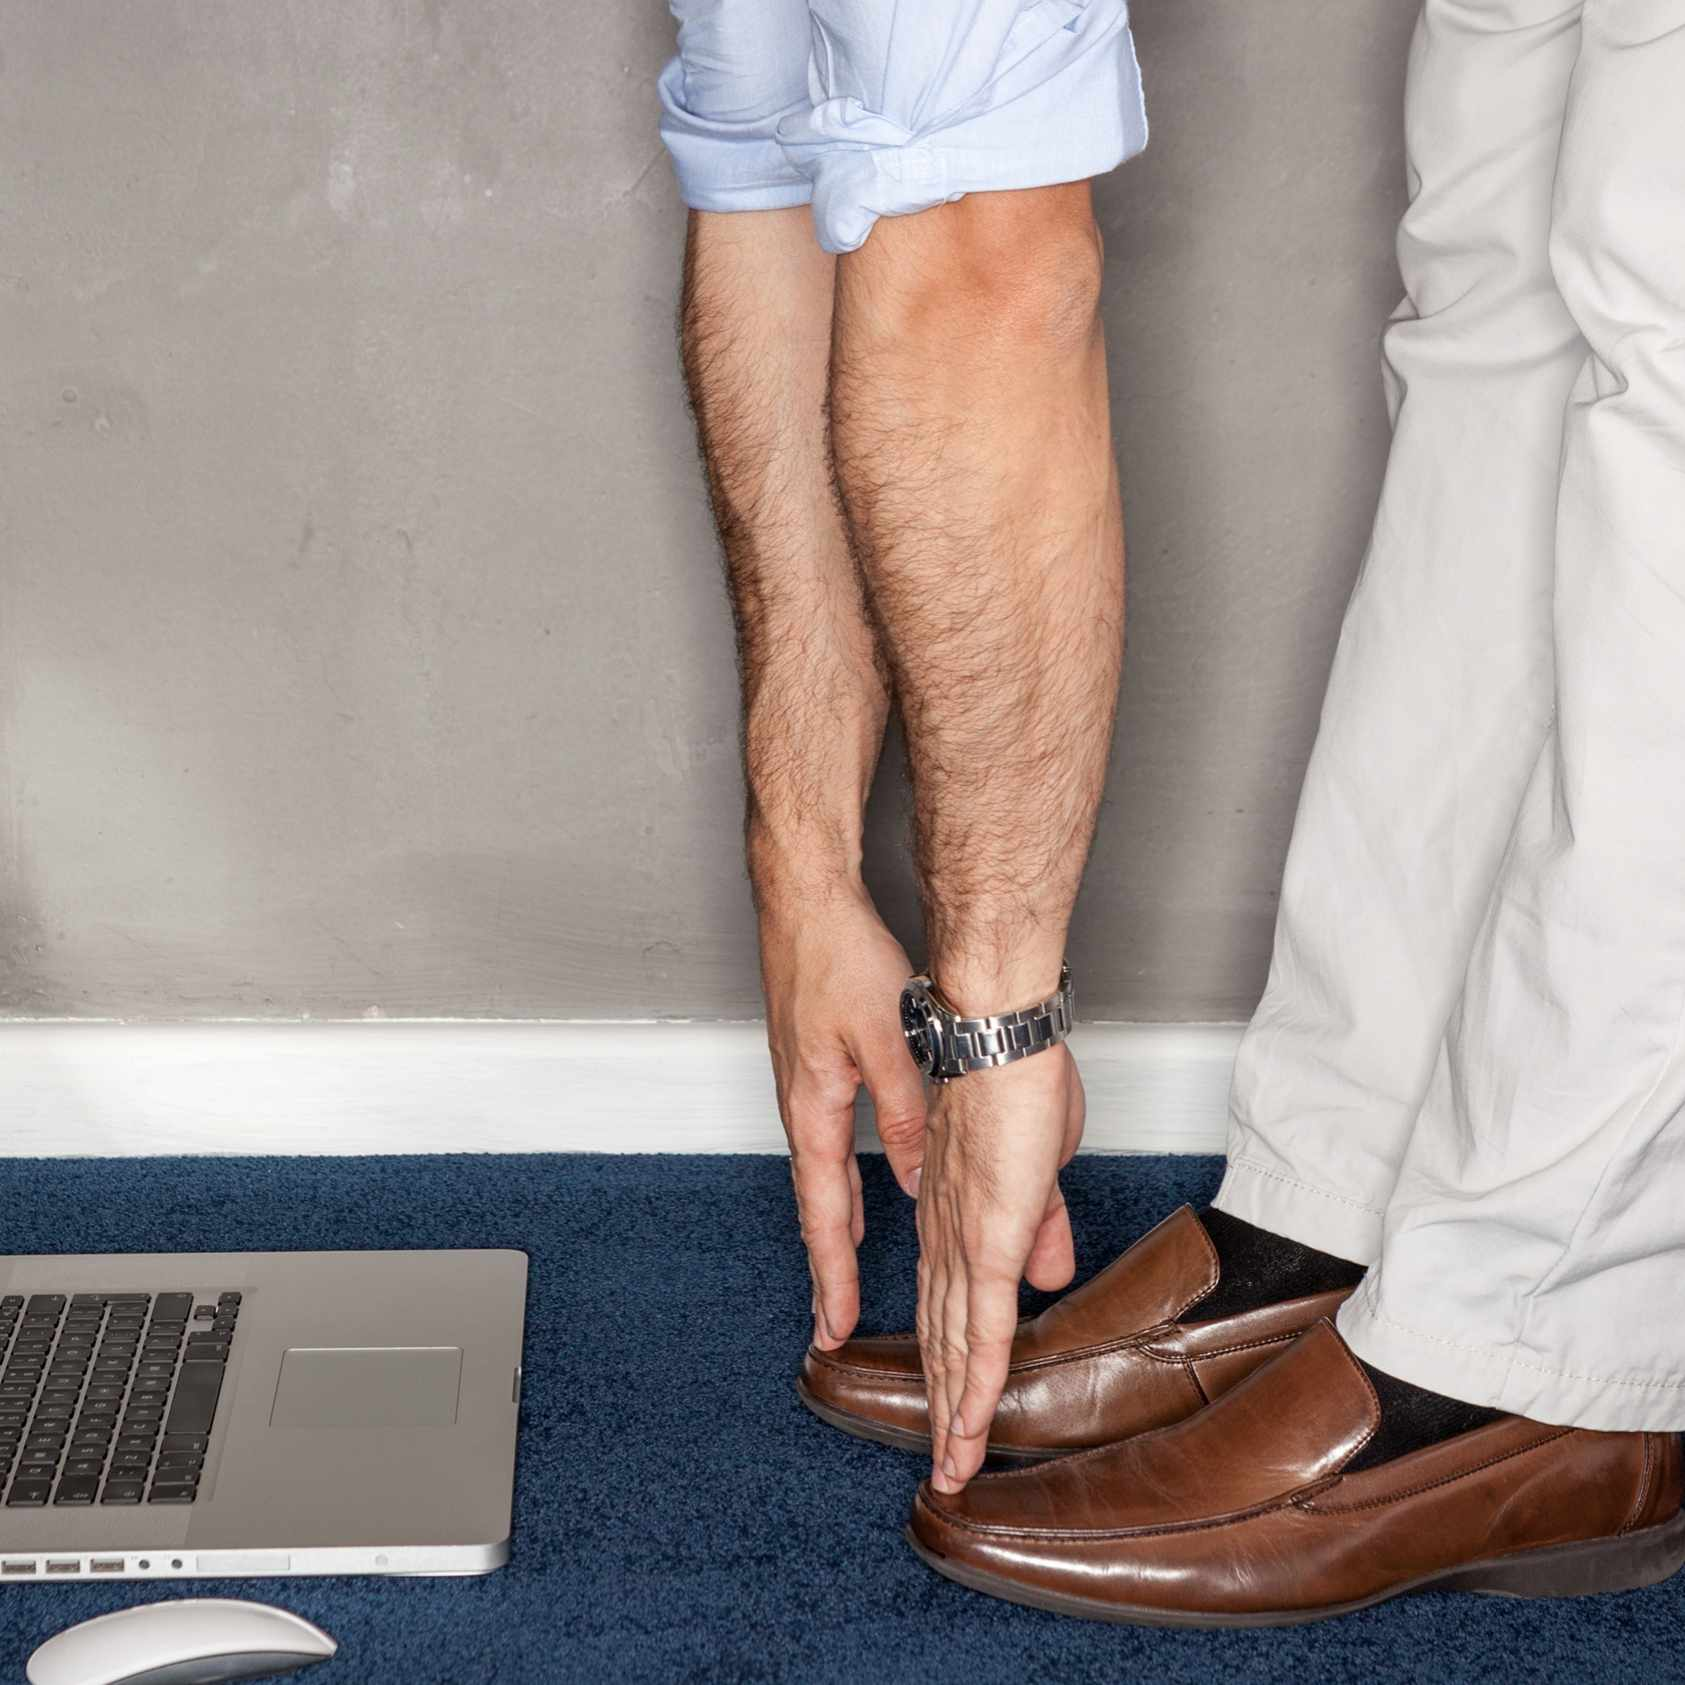 a man standing in his office doing exercises with laptop on floor, touching his toes